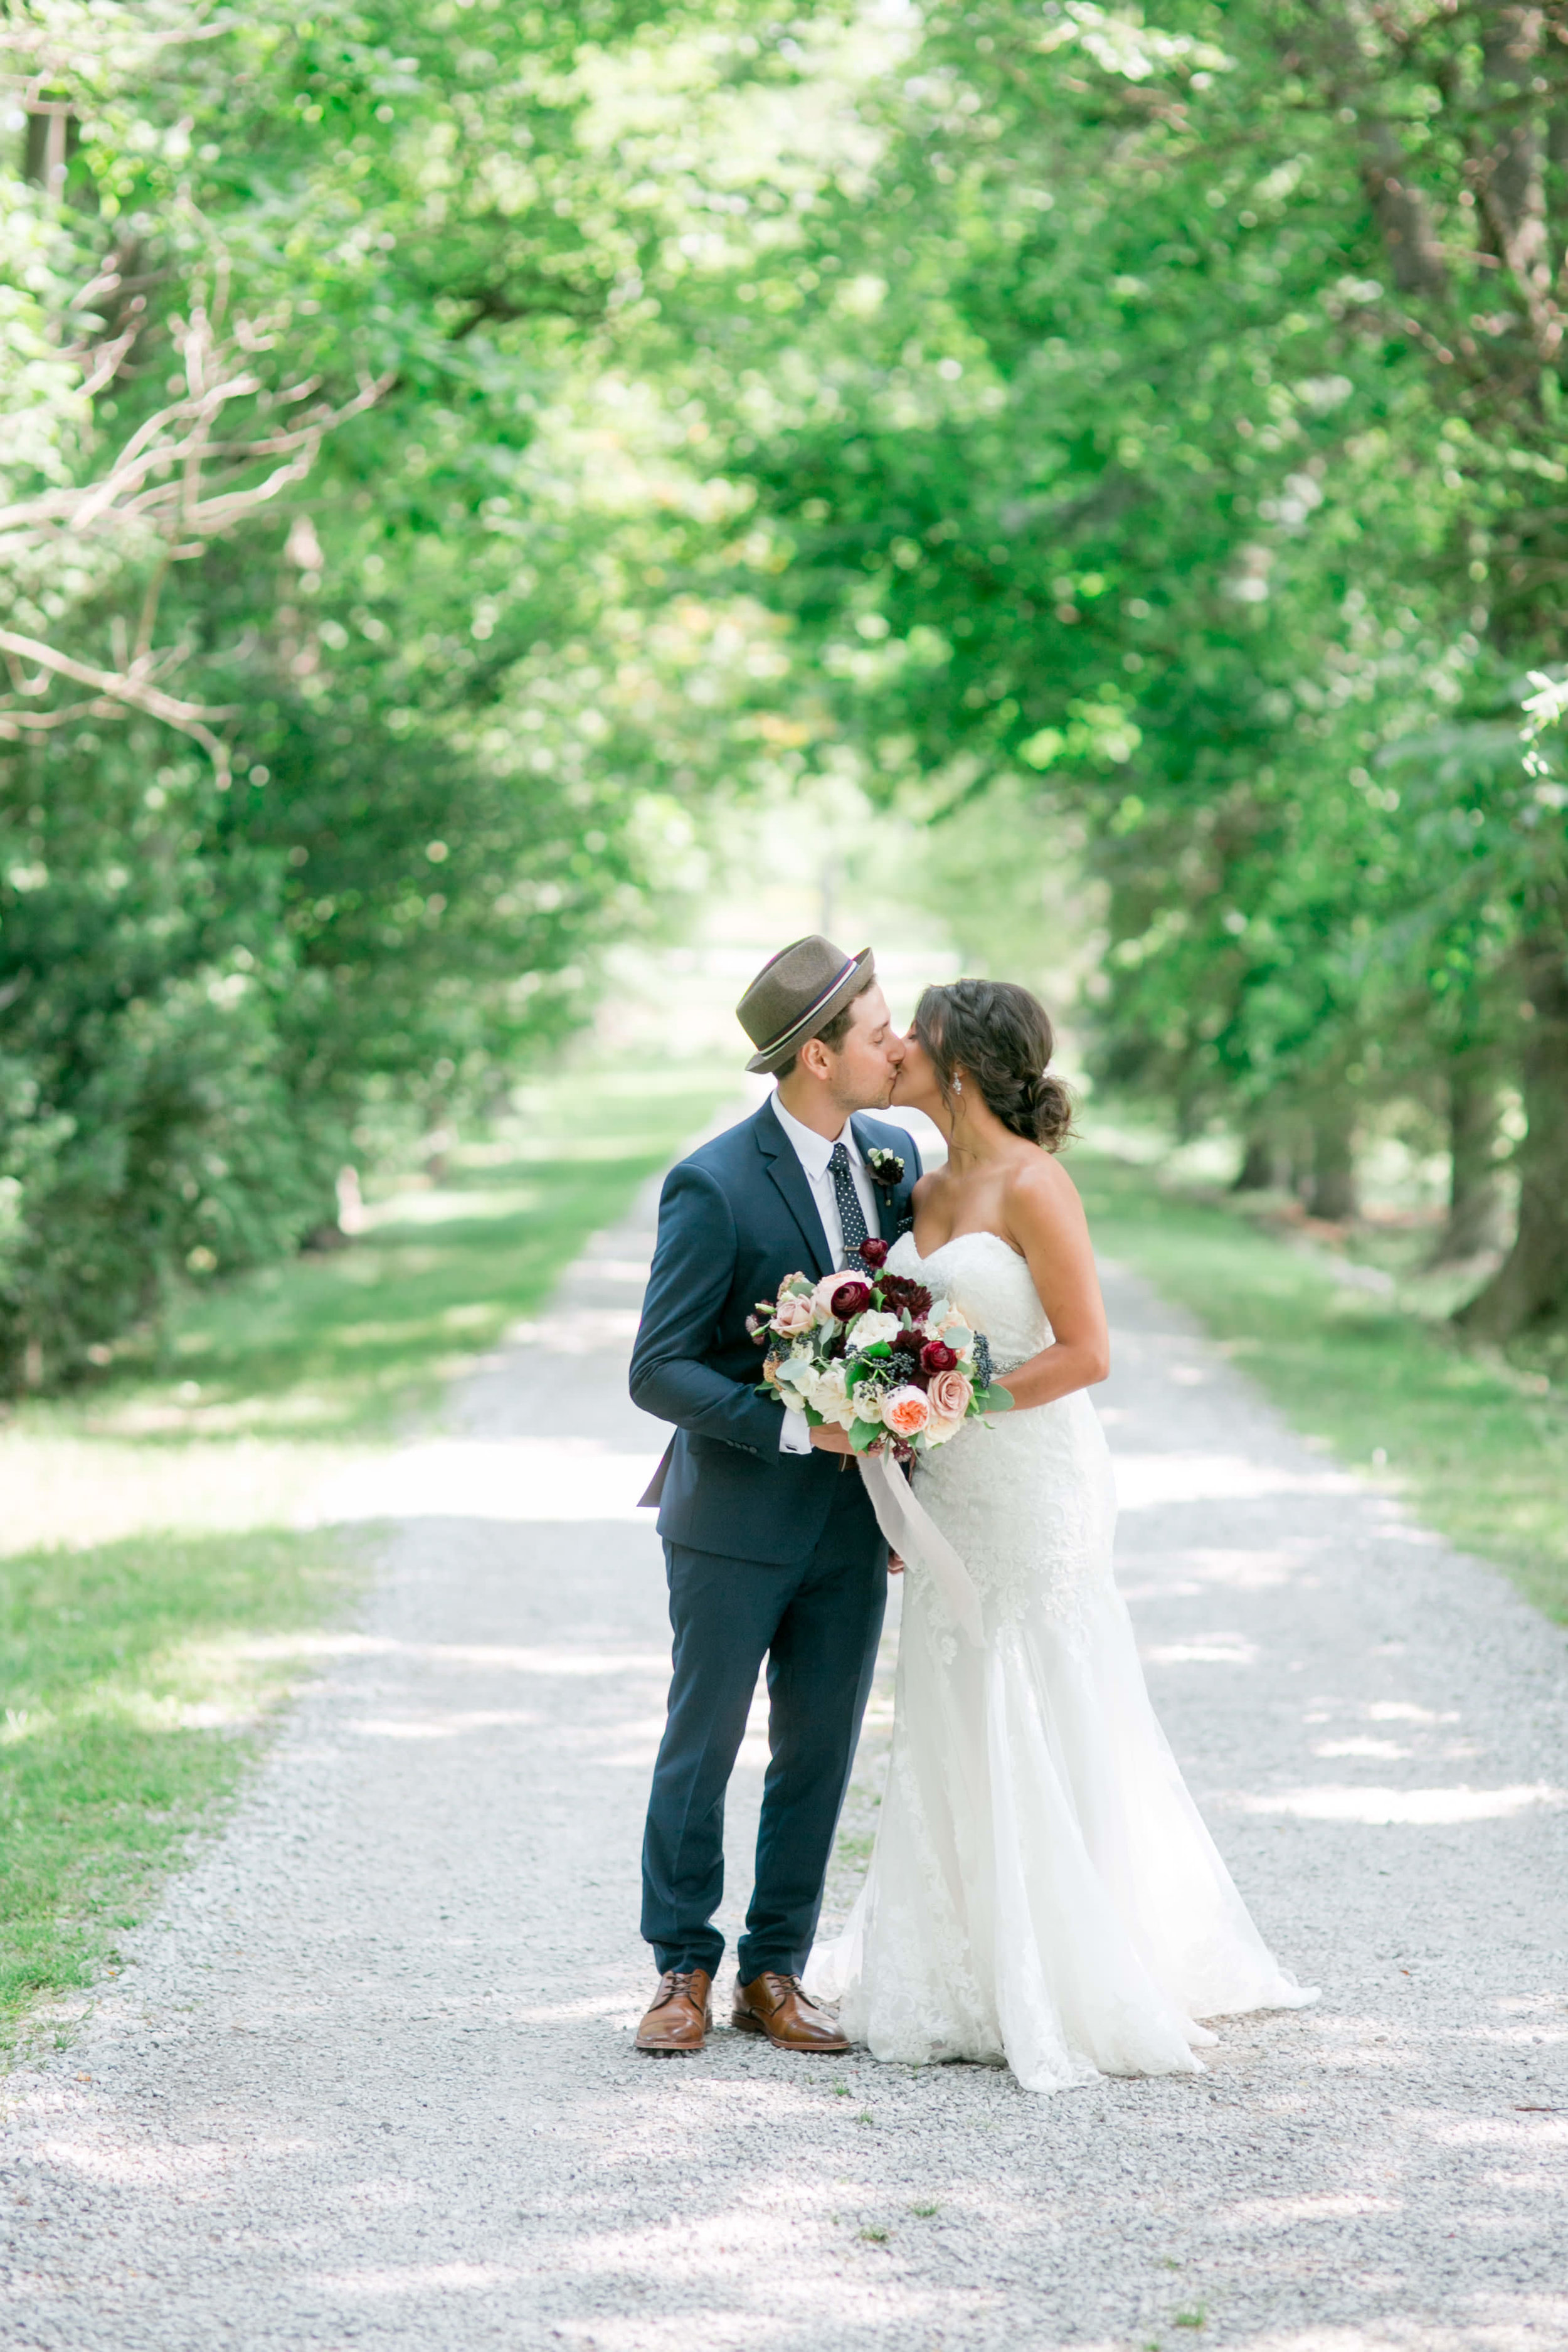 Sabrina___Jonathan_Wedding___High_Res._Finals_Daniel_Ricci_Weddings_192.jpg